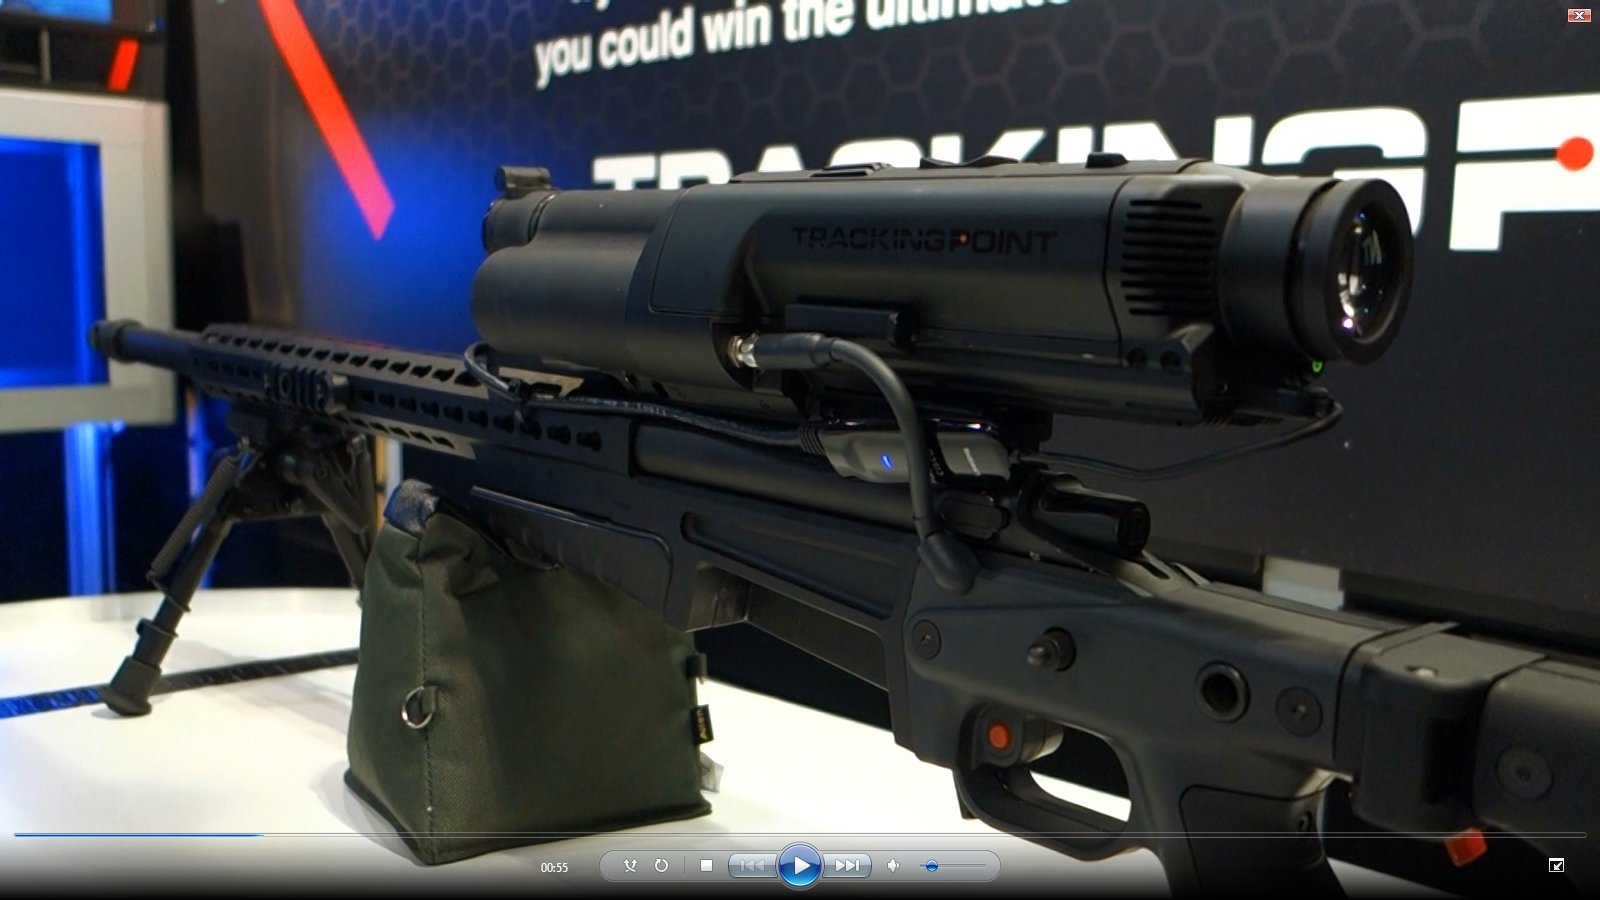 """McMillan/TrackingPoint .50 BMG Precision Guided Rifle (PGR): Meet the Future 3,100-Yard """"Super Gun"""" Sniper Rifle with XactSystem Smart Rifle Scope Technology"""